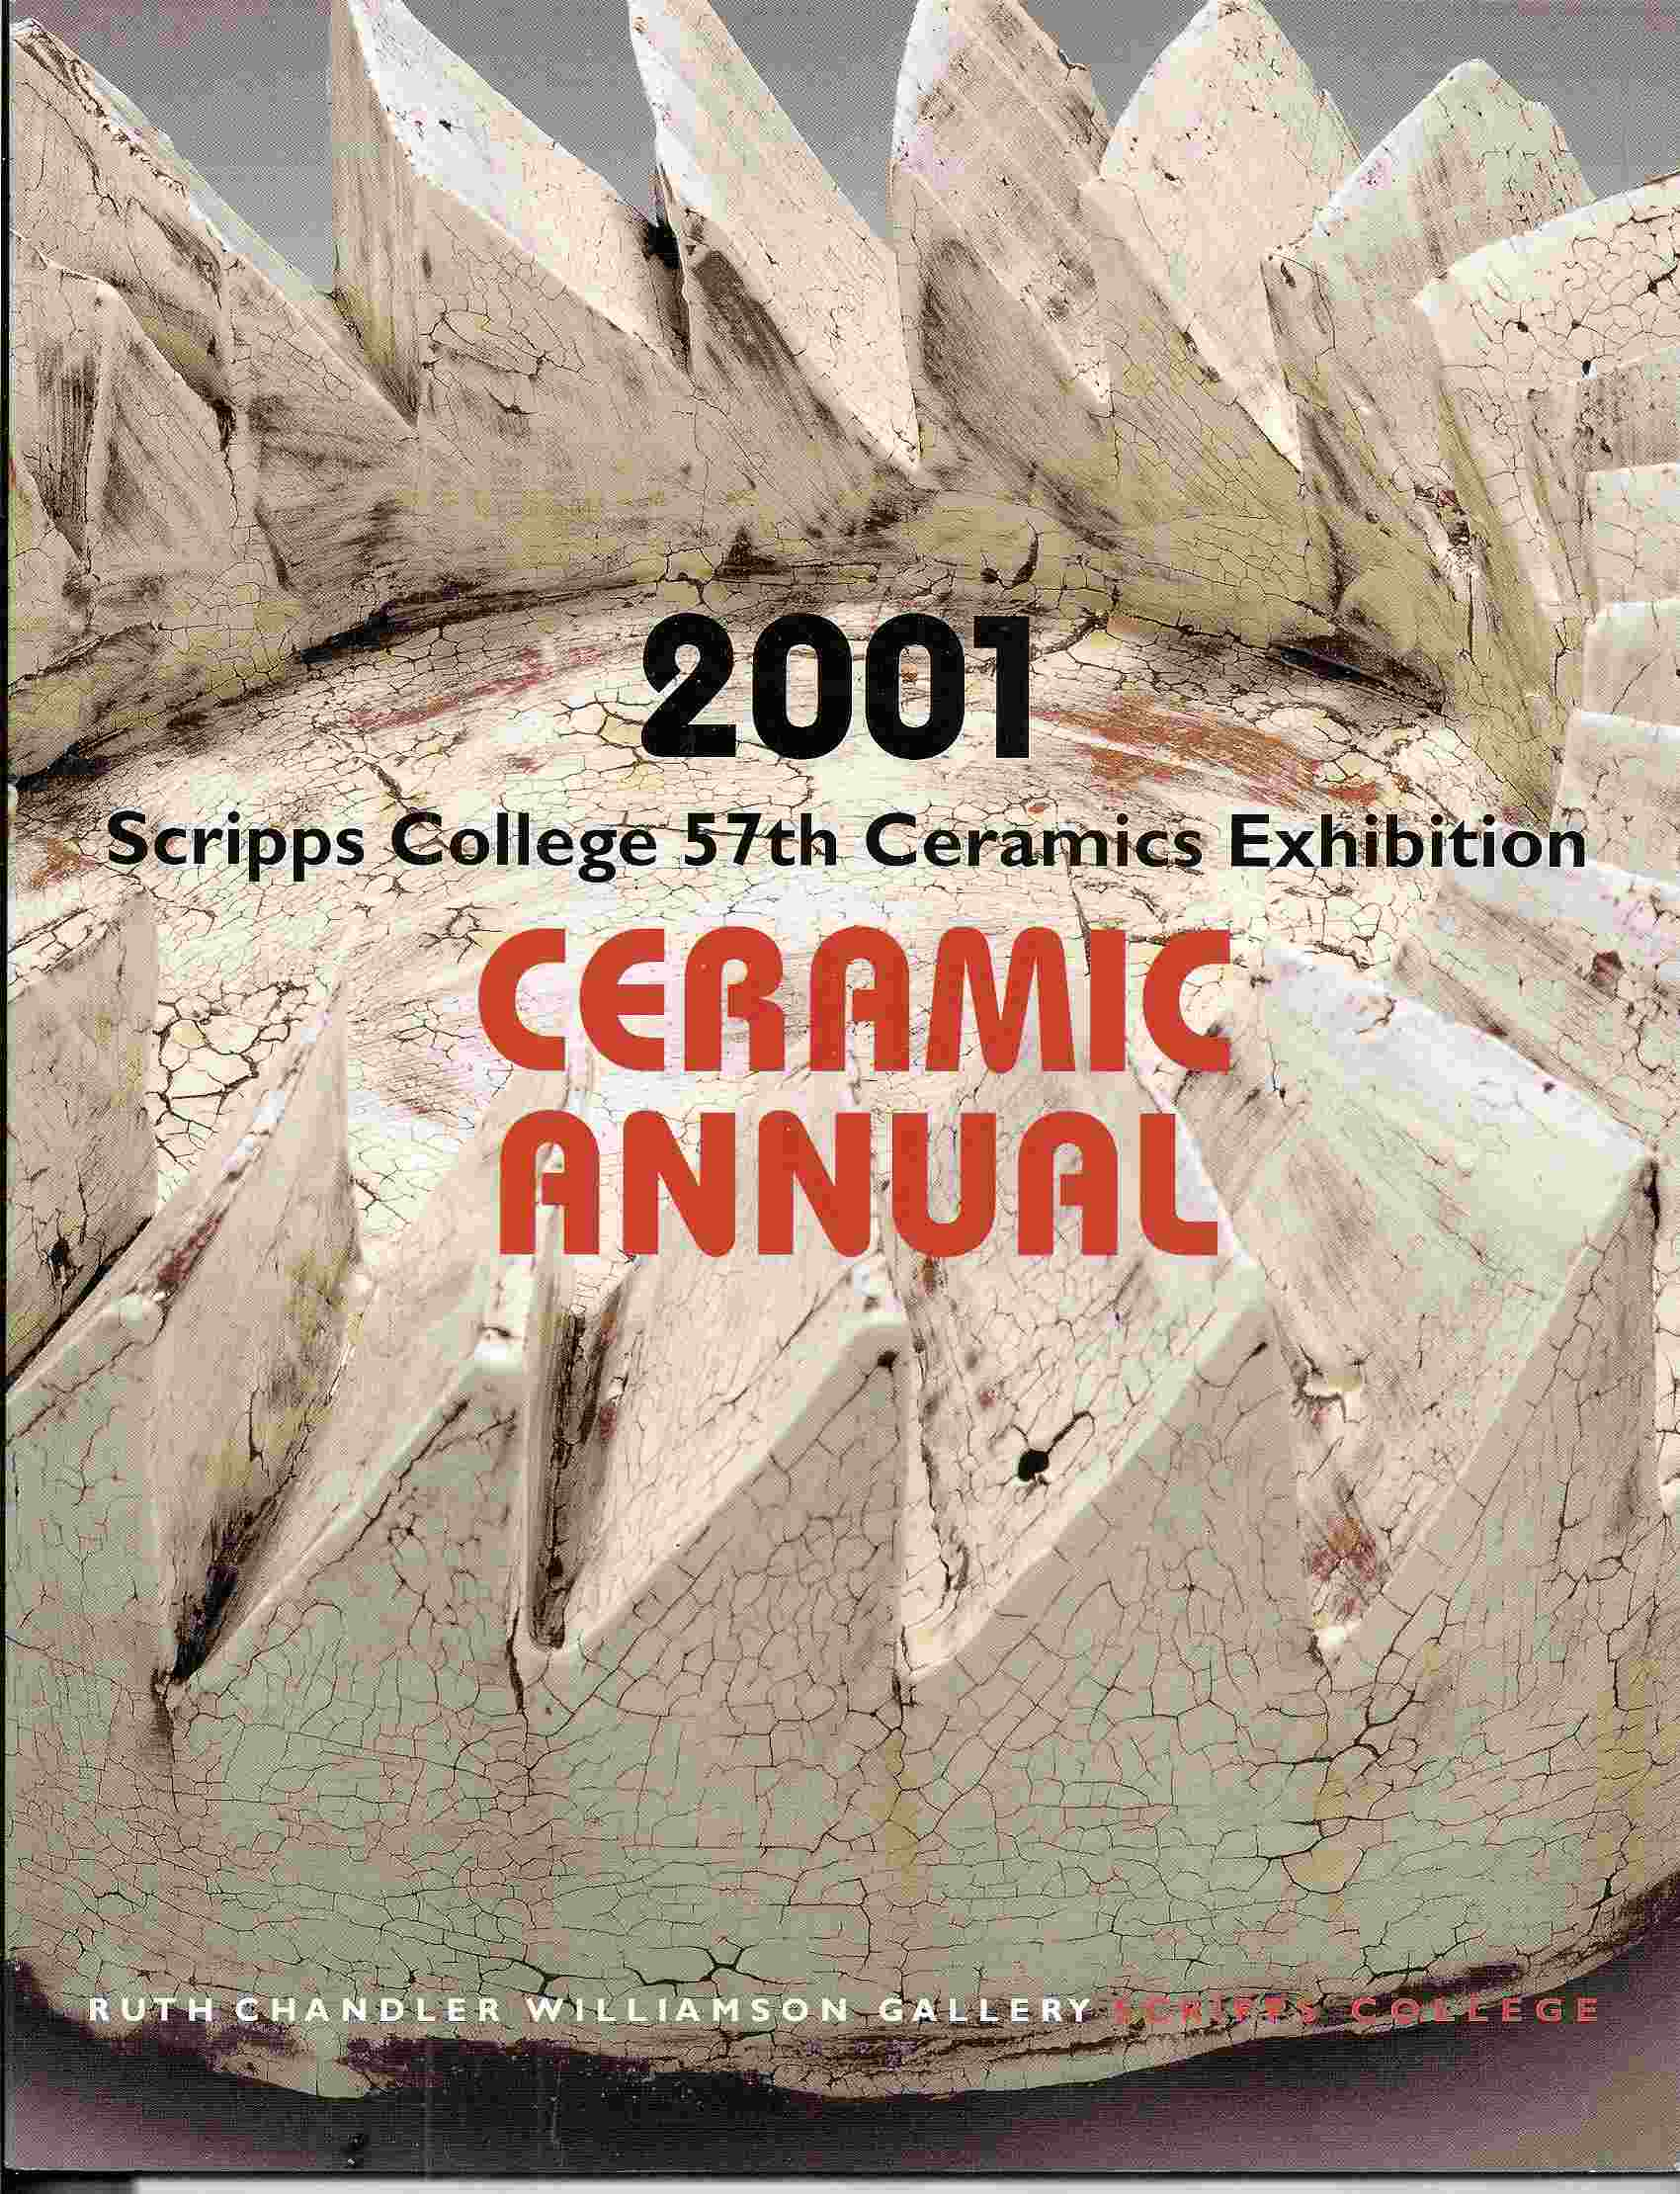 Image for 57th Annual Invitational Ceramics Exhibition; 2001 CERAMIC ANNUAL